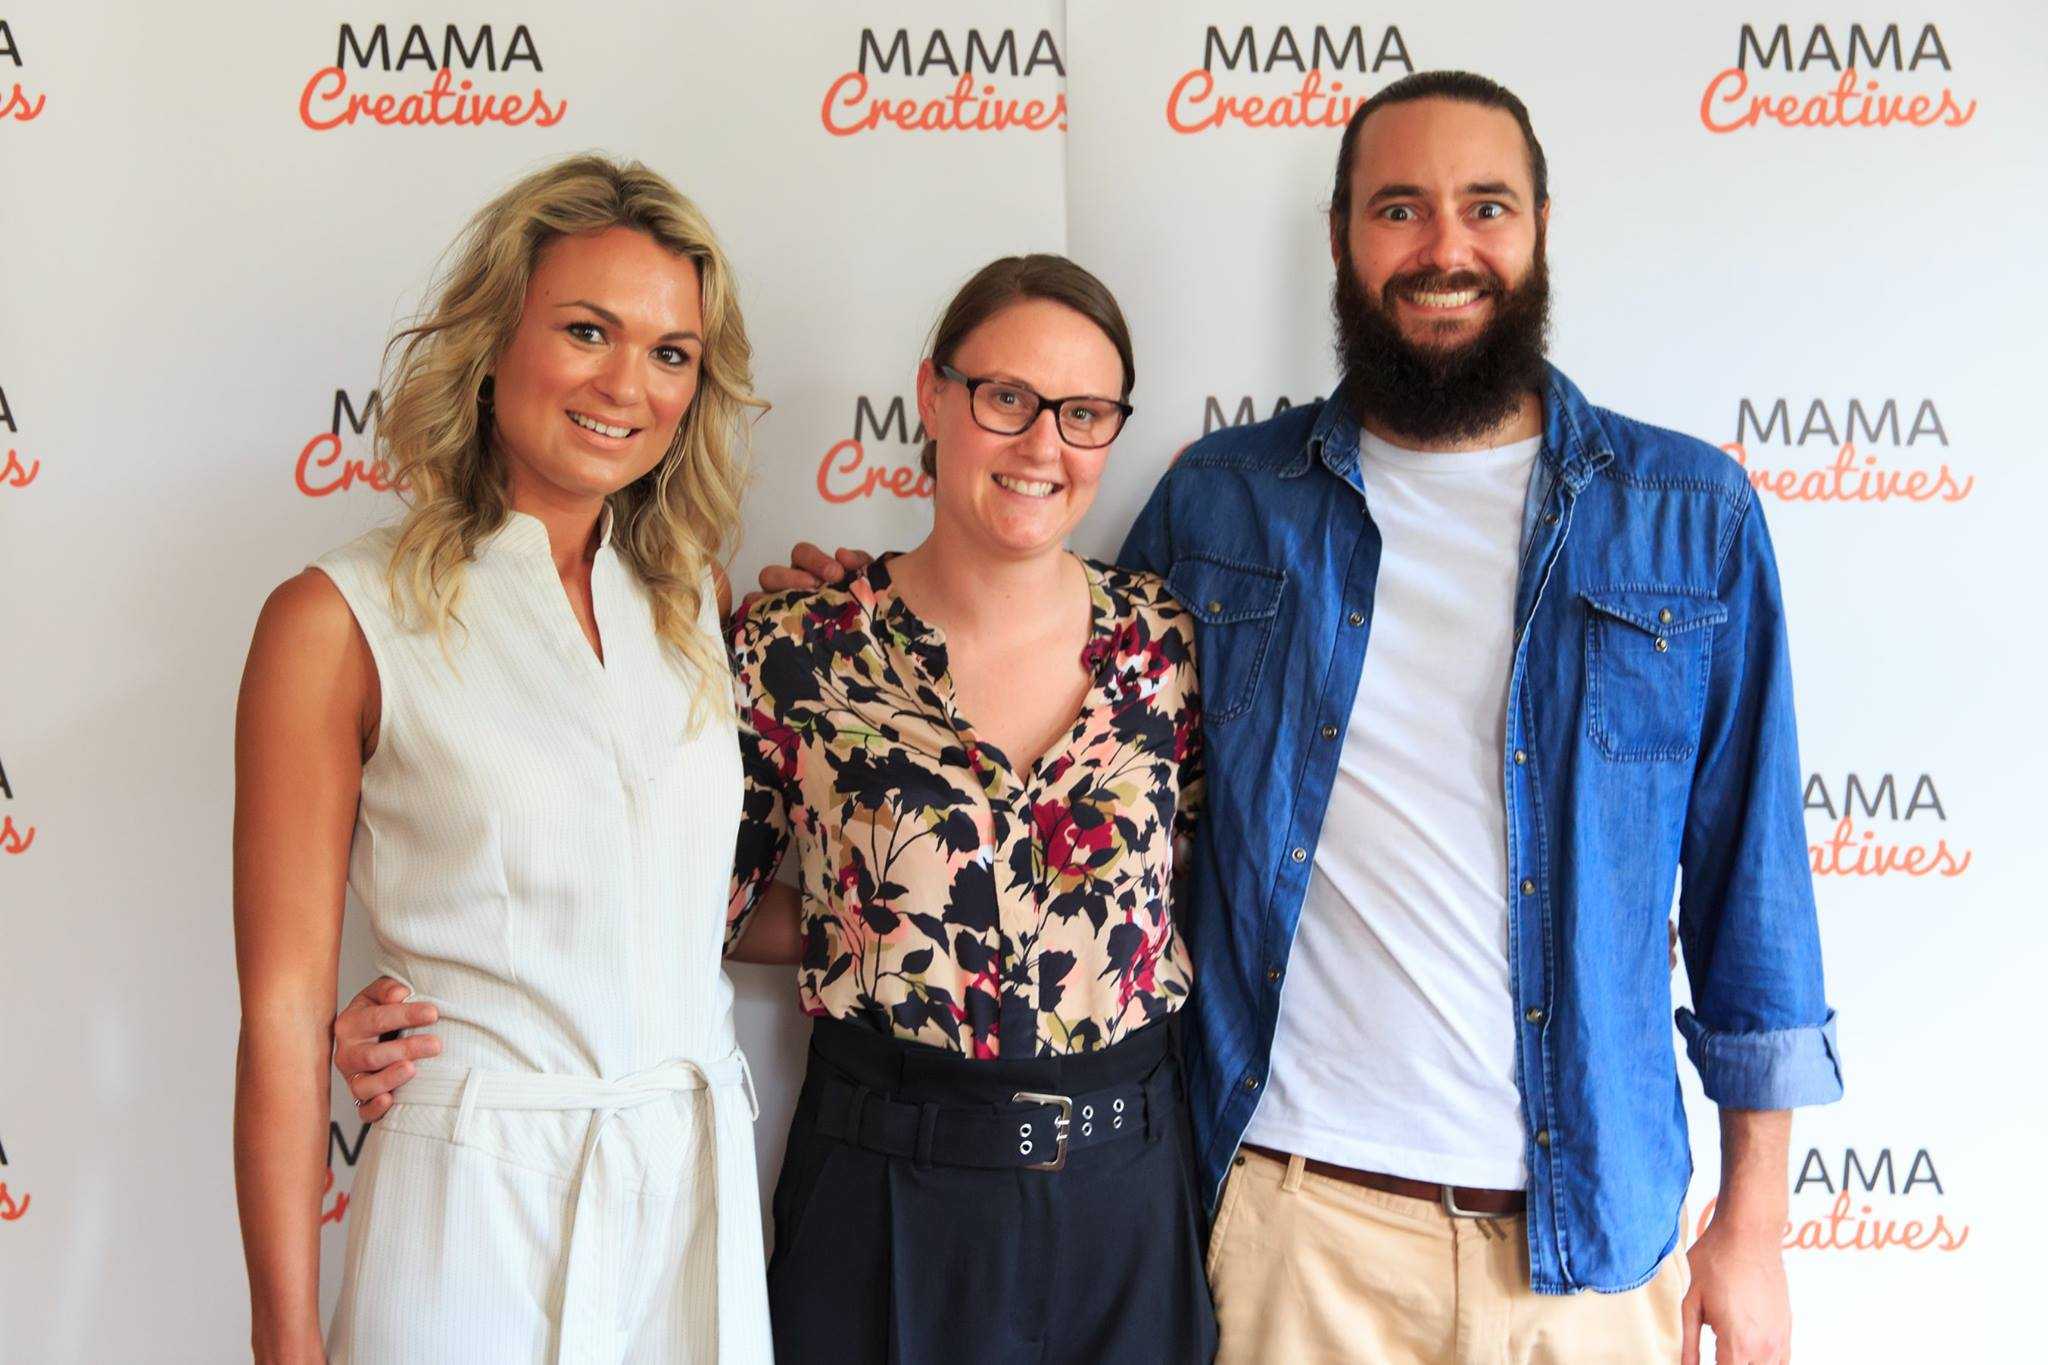 Courageous speaker, Lauren Croxford, with friends (yes men are welcome at our events)! Lauren shared her amazingly courageous story, at our Mama Creatives Story Slam.